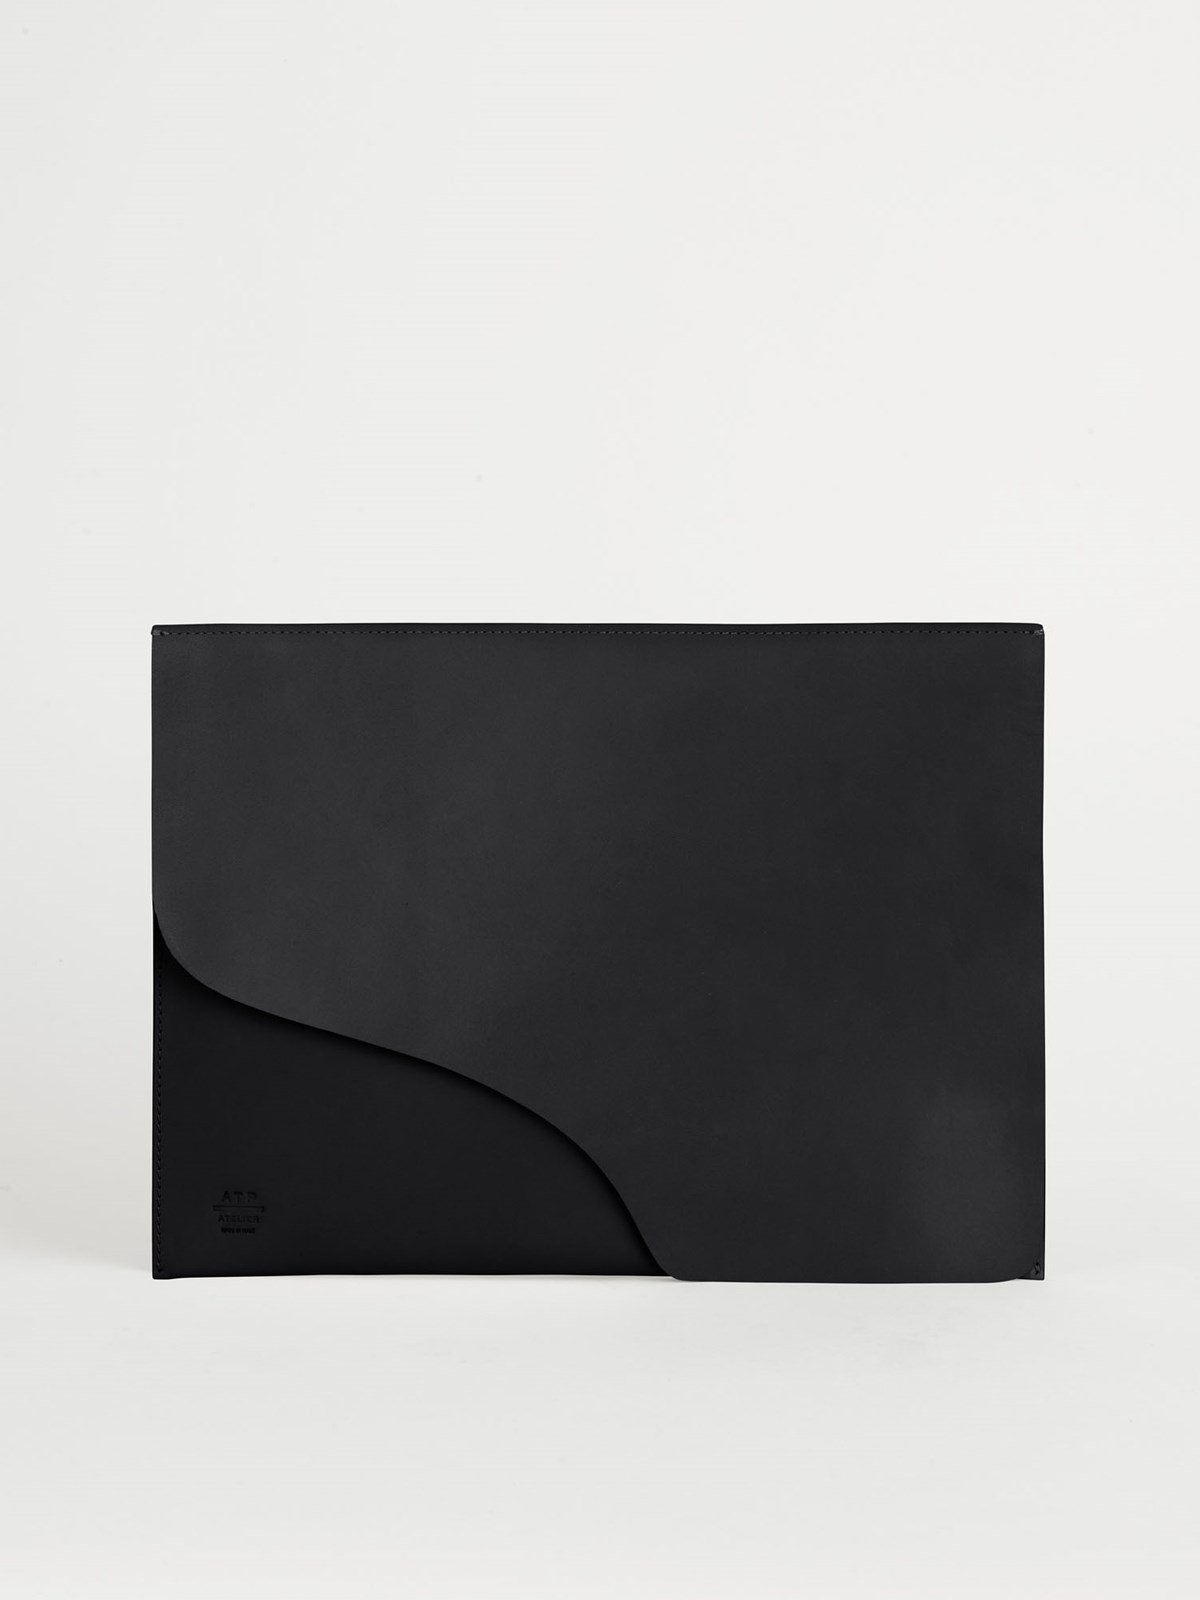 Sardegna Grande Black Laptop case